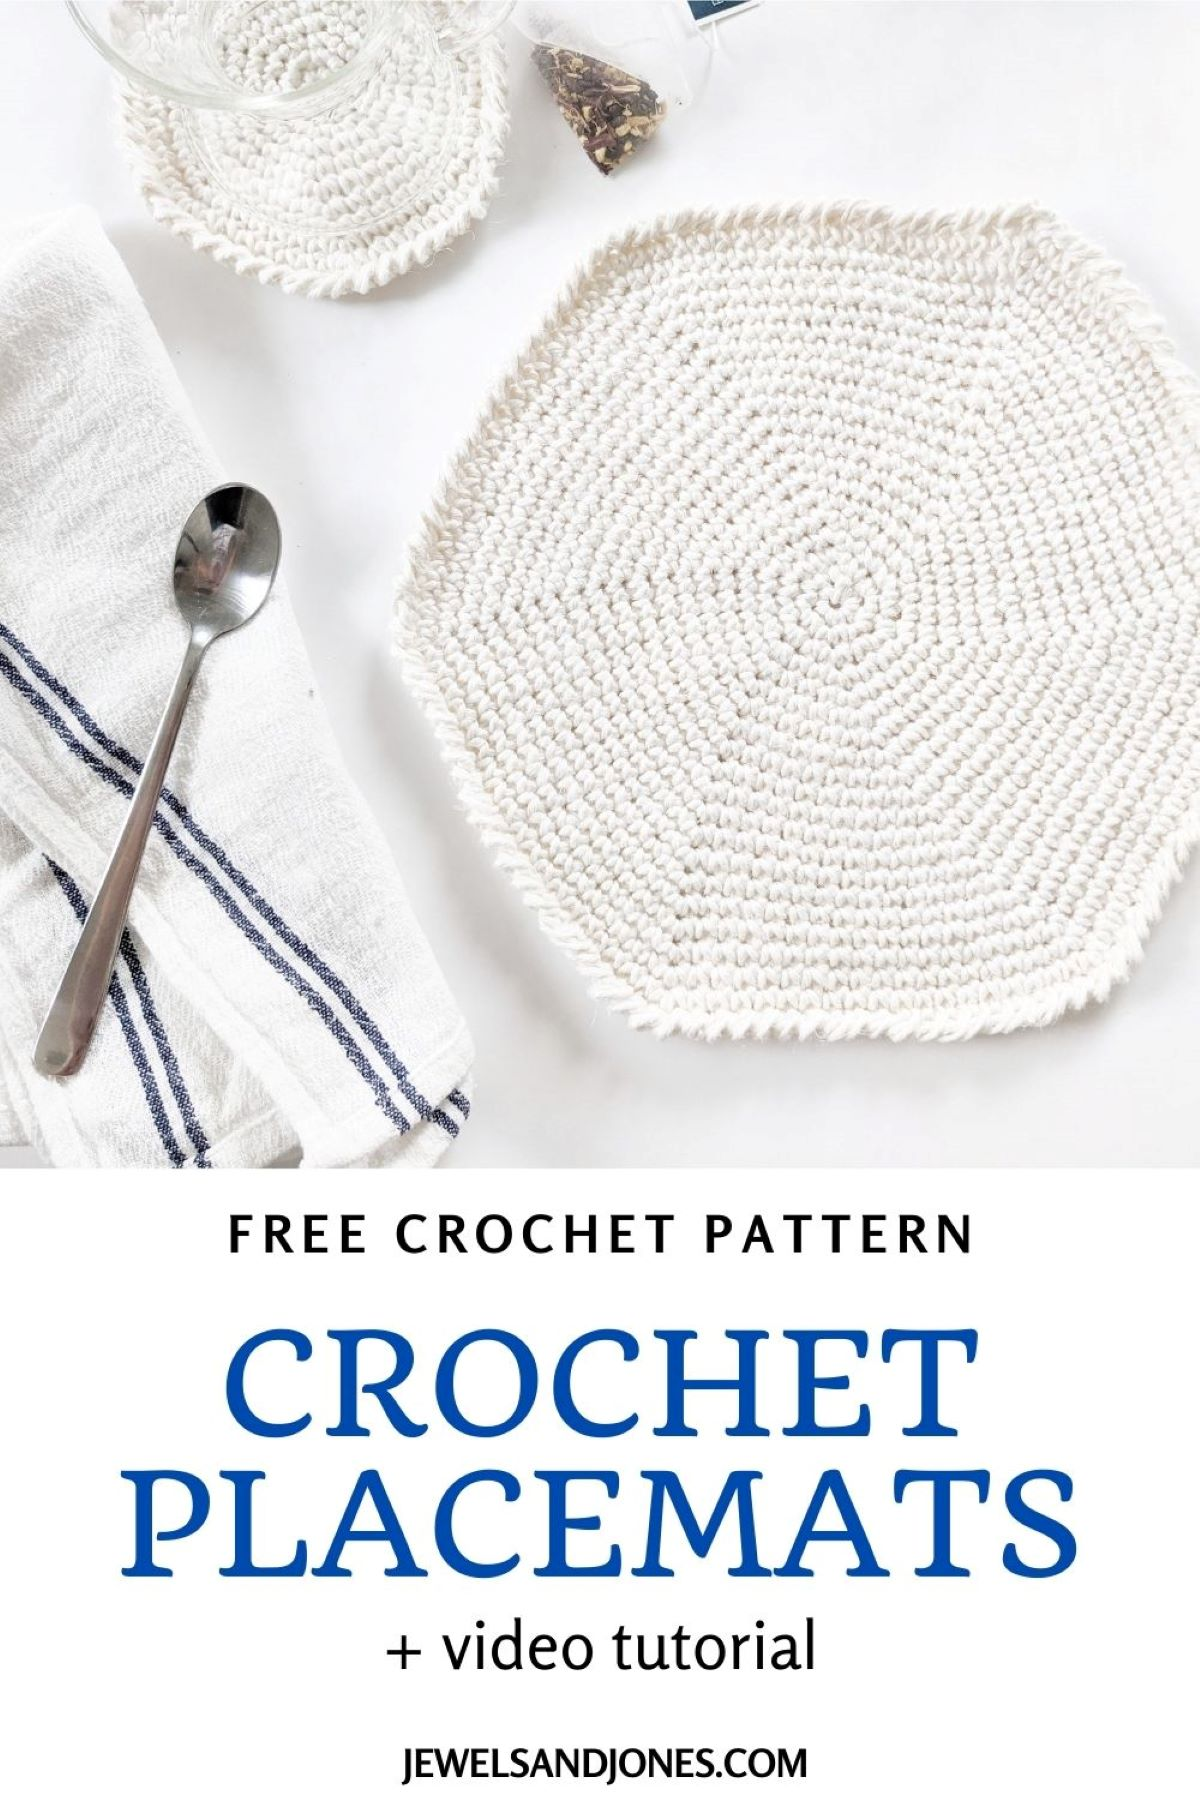 a picture to pin of the crochet placemat pattern